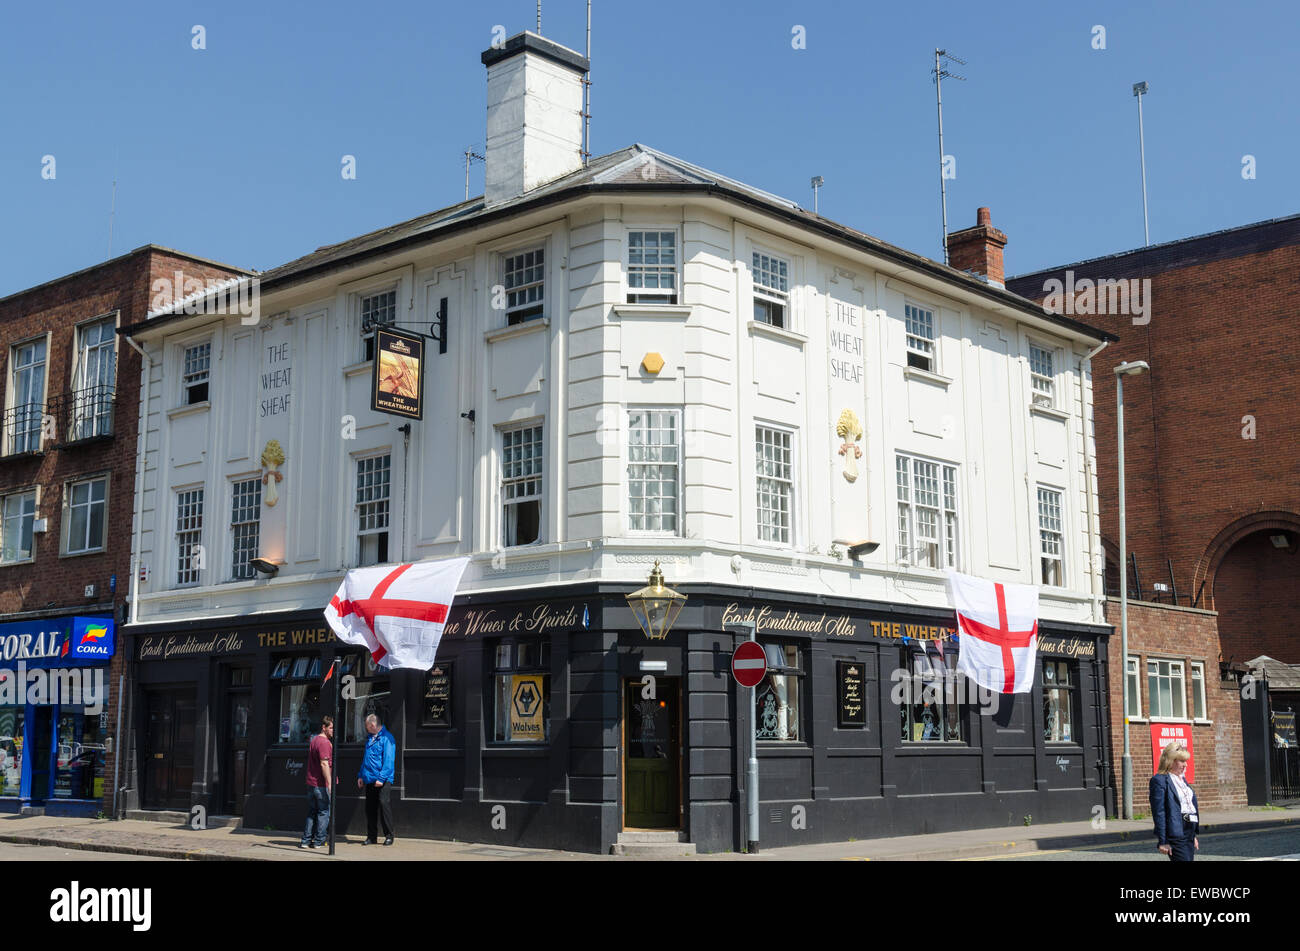 Large Union Flags hanging on the Wheatsheaf public house in Wolverhampton - Stock Image